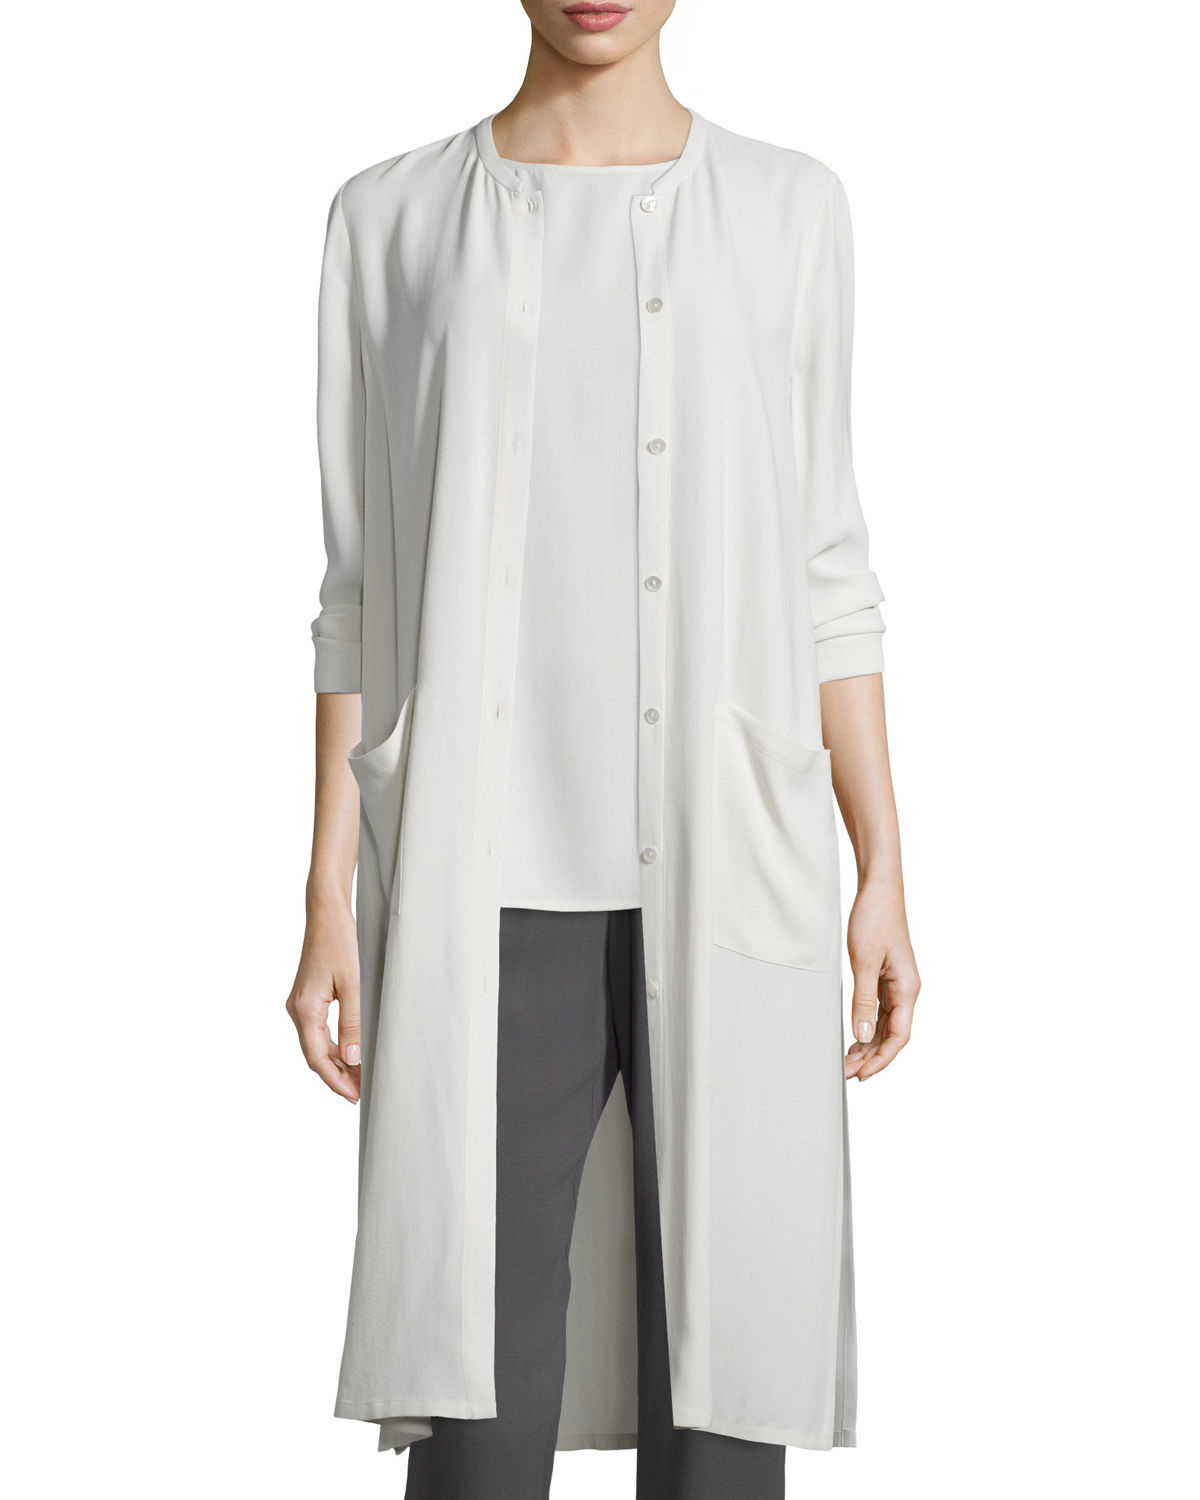 Eileen fisher Long Button-Front Silk Duster Coat in White | Lyst